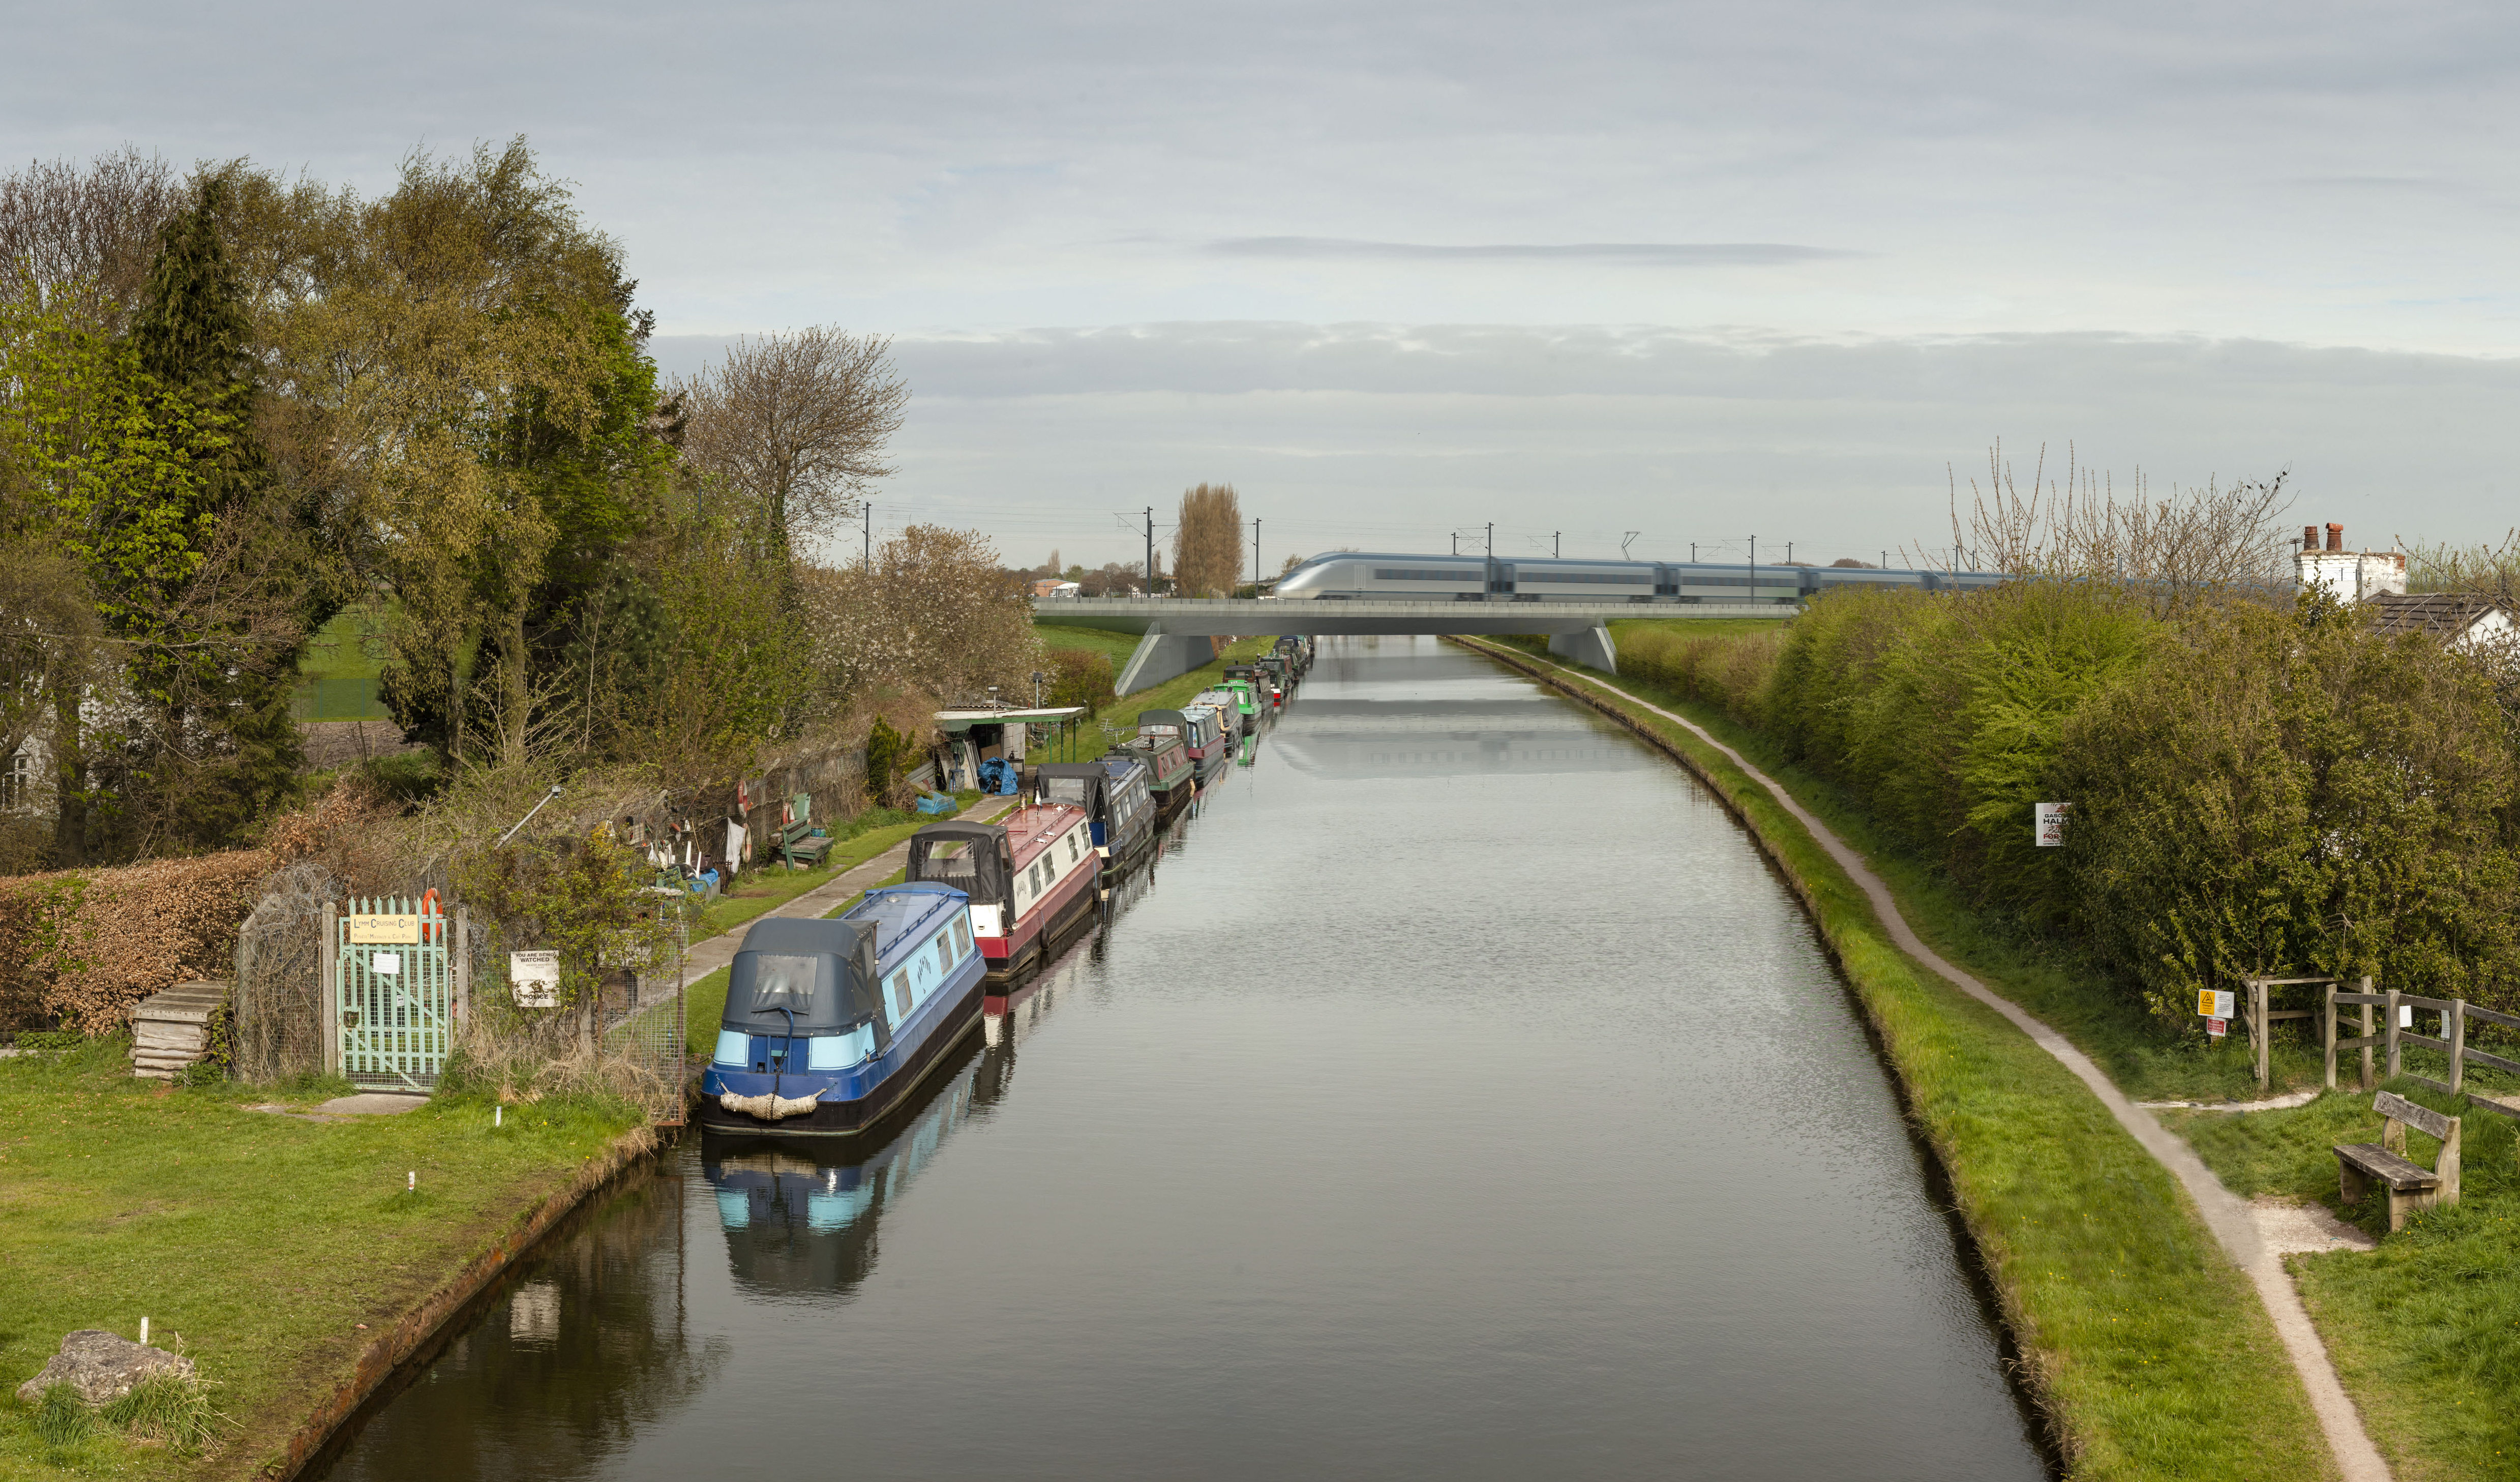 artist's impression of HS2 crossing a canal